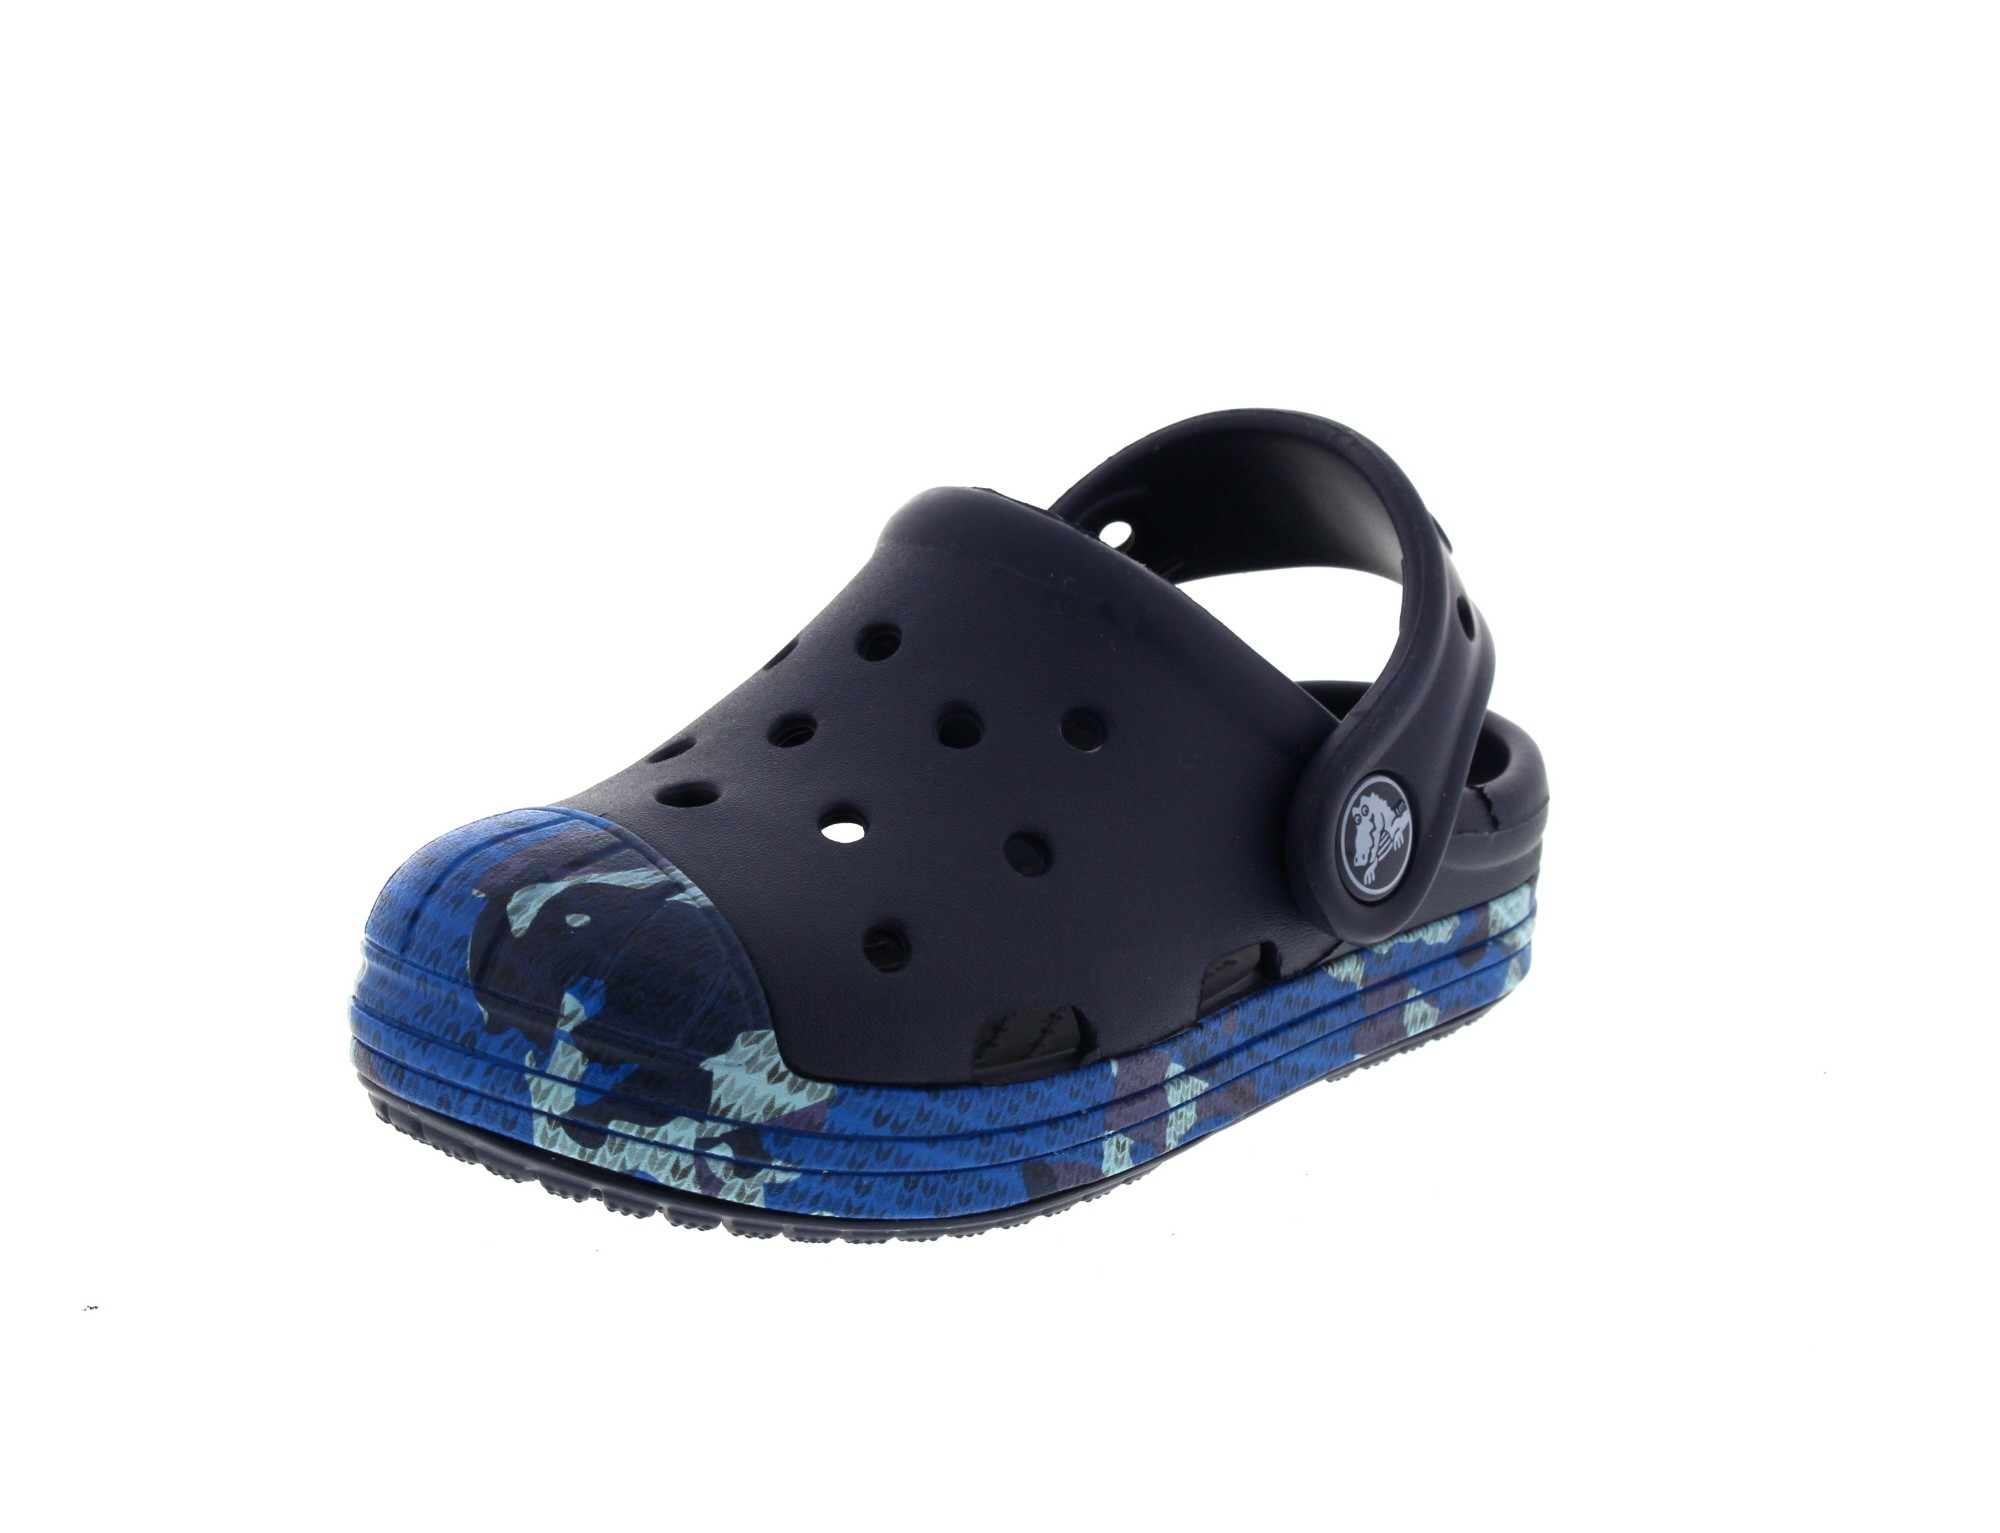 CROCS Kinderschuhe - BUMP IT CAMO Clog - navy 0-4298